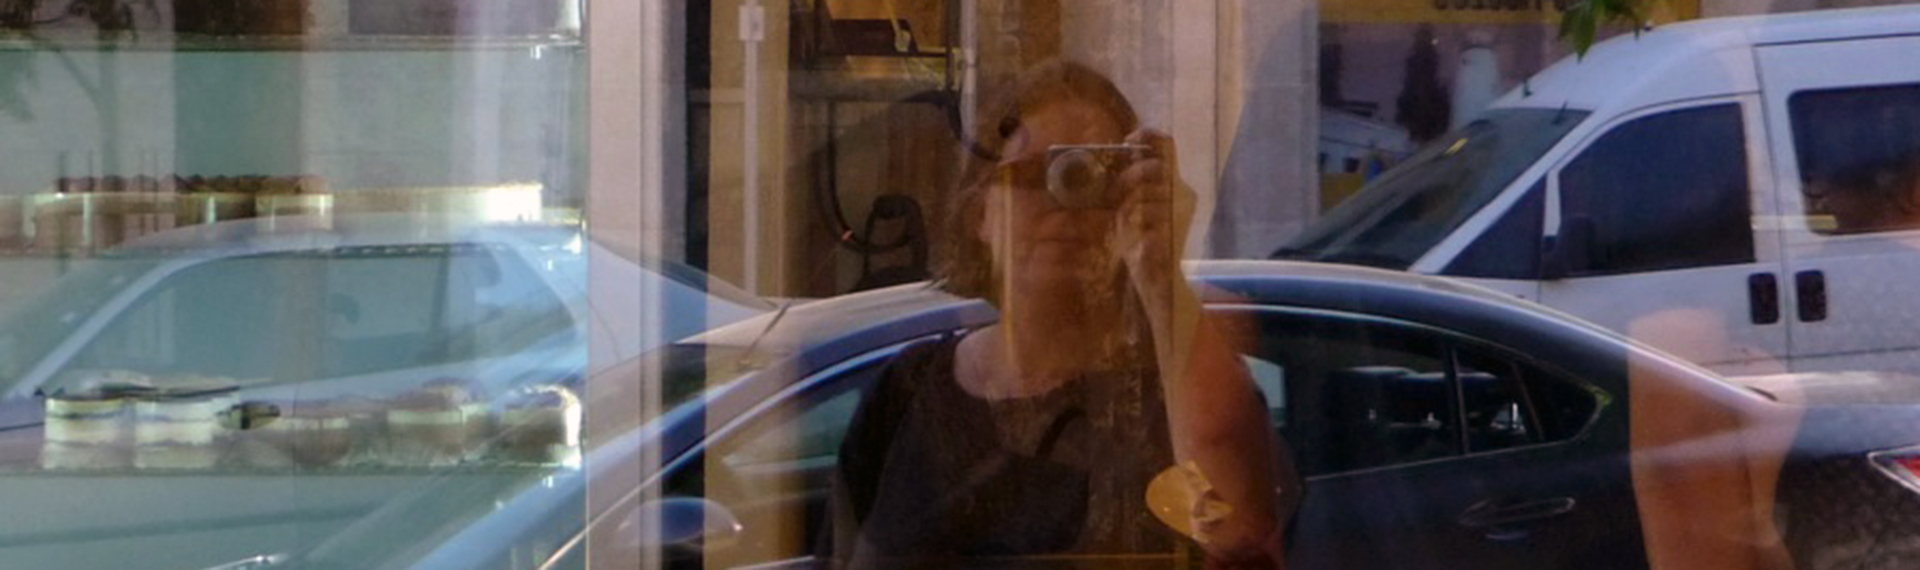 Woman taking a photograph and reflection in a window